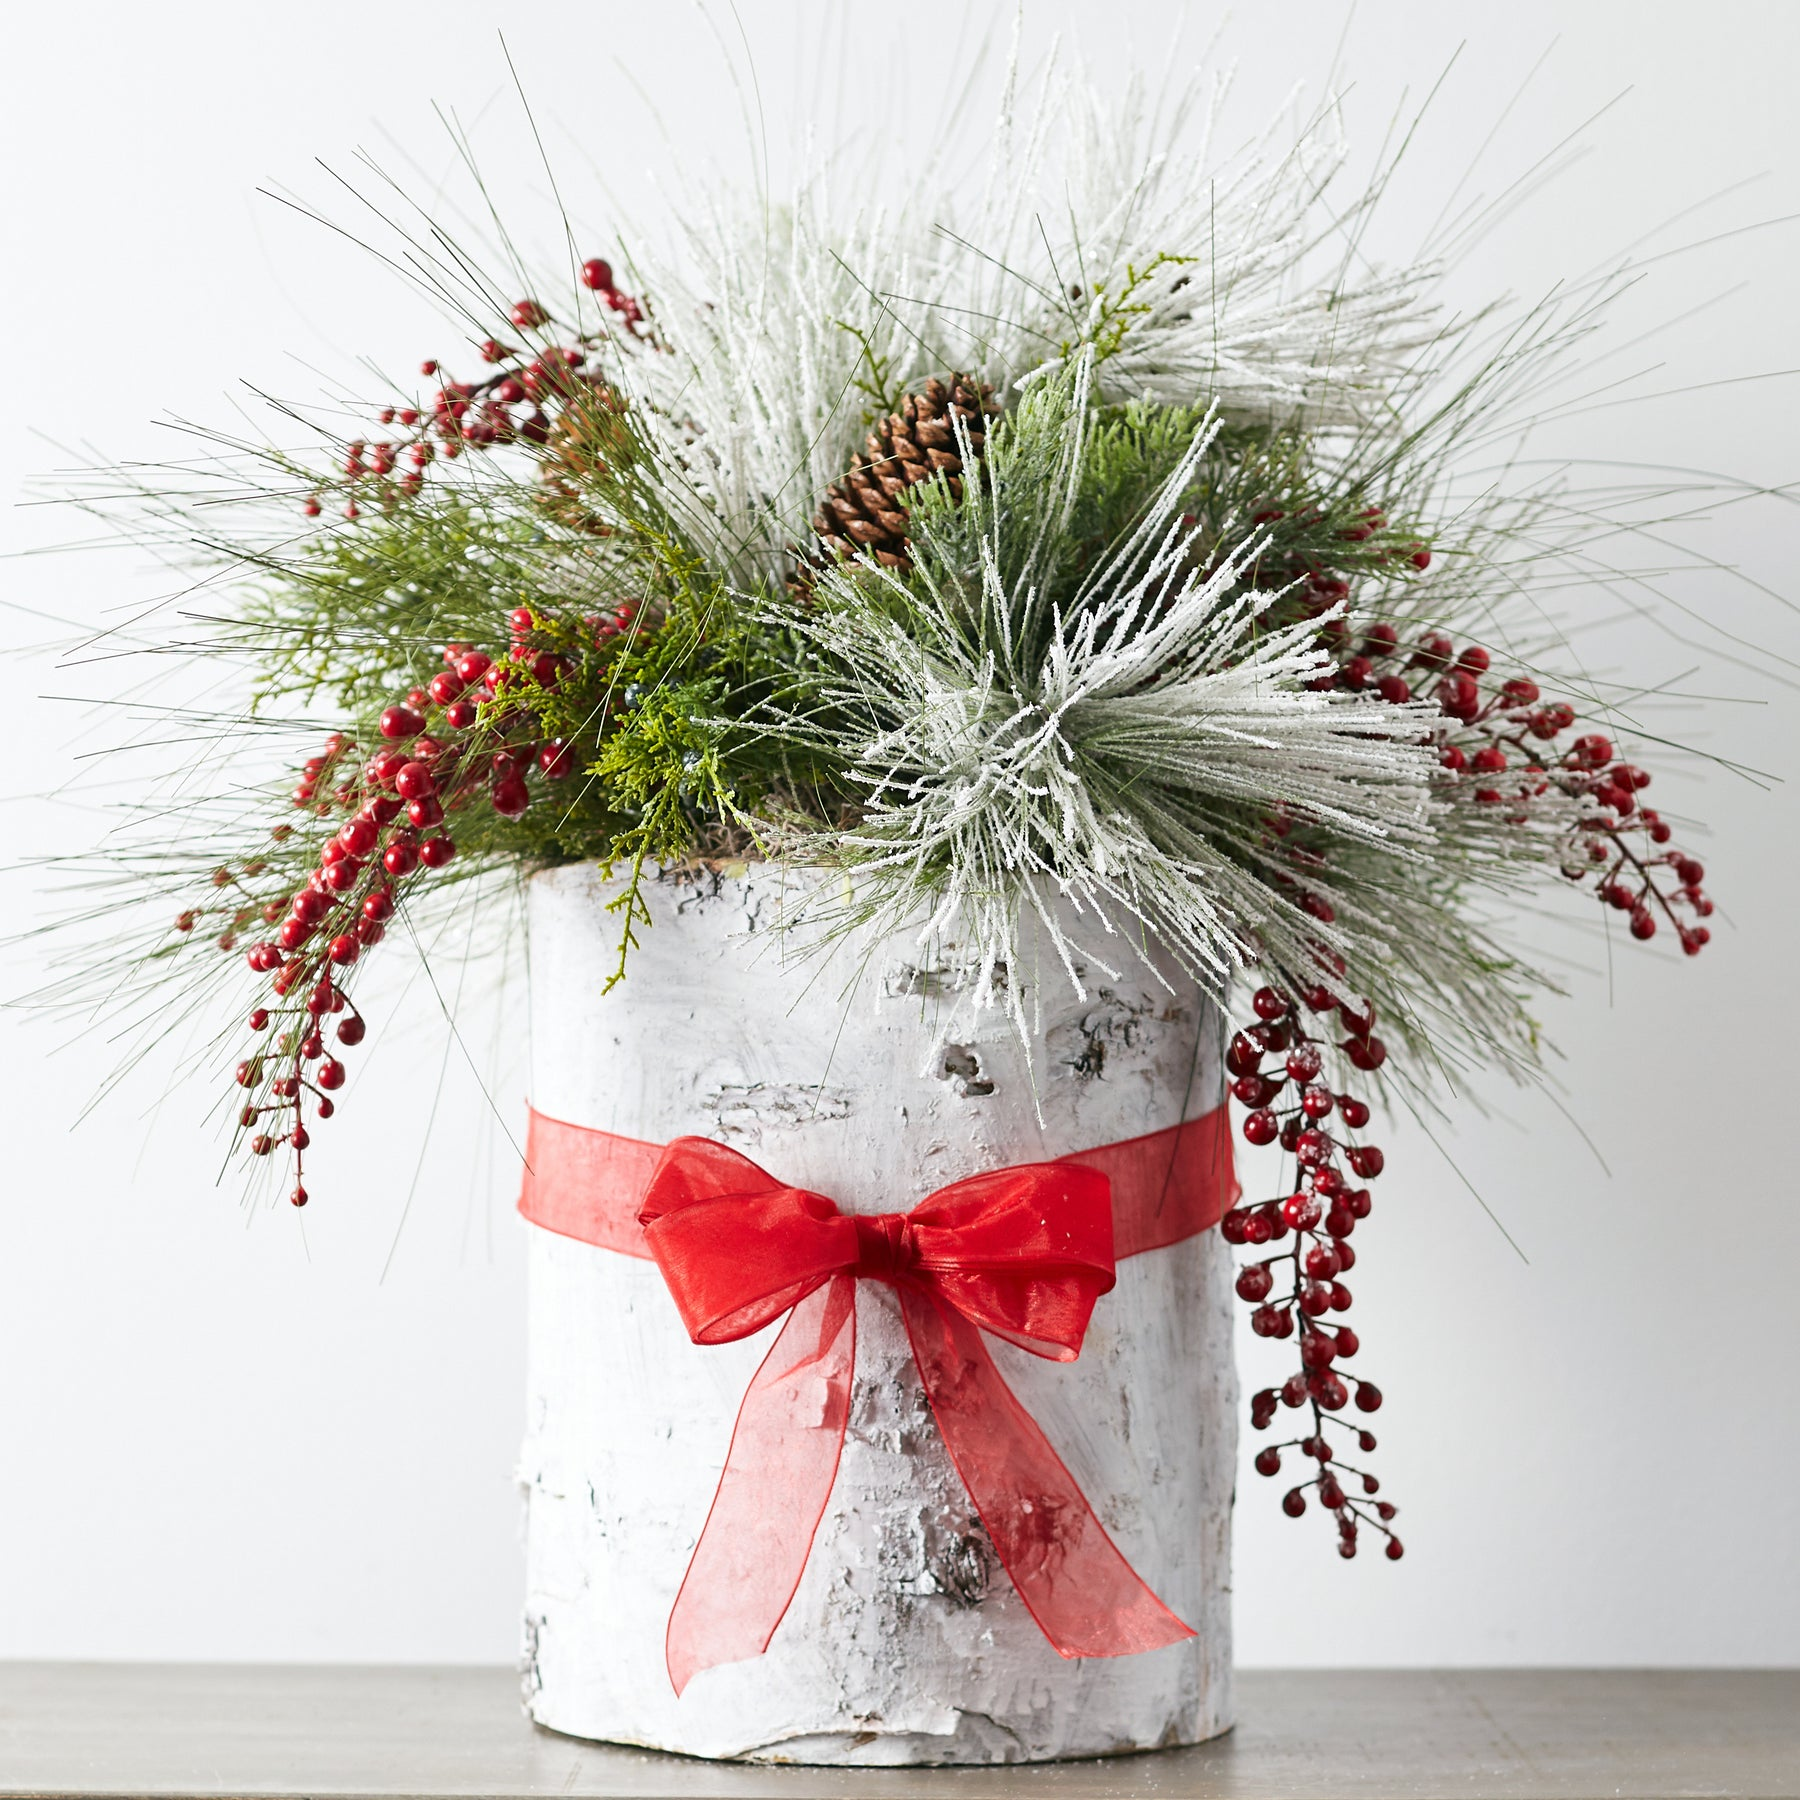 Large Christmas Greenery Red Berry Centerpiece Arrangement In White Darby Creek Trading